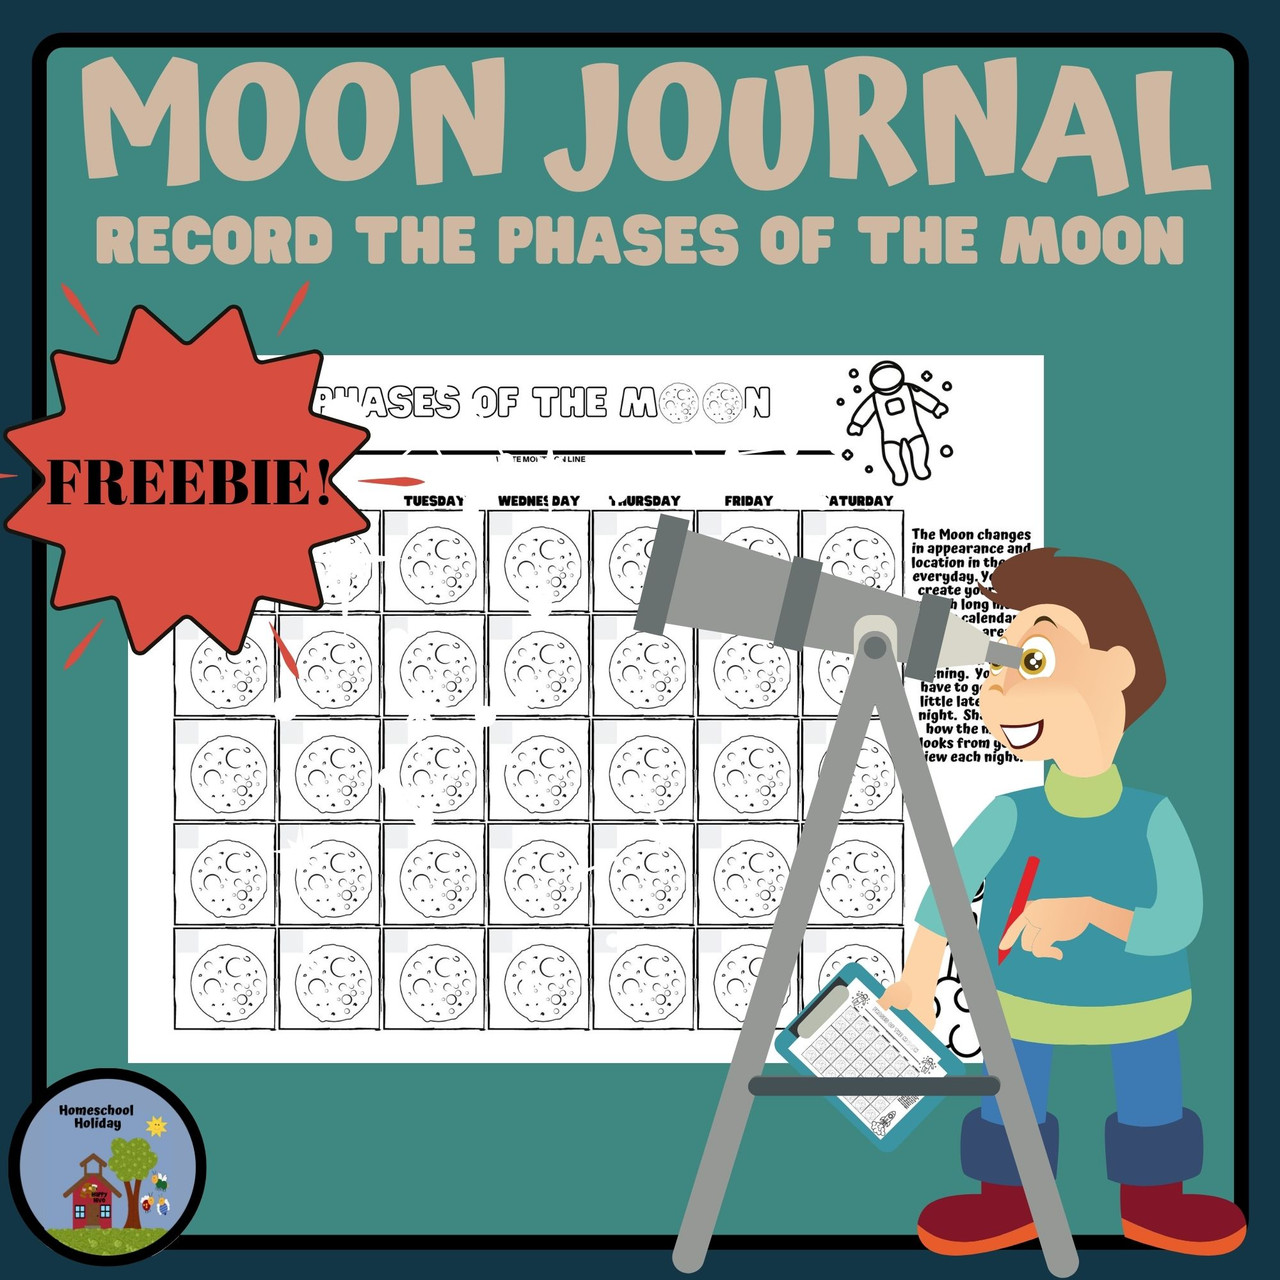 Phases of the Moon Journal - FREE